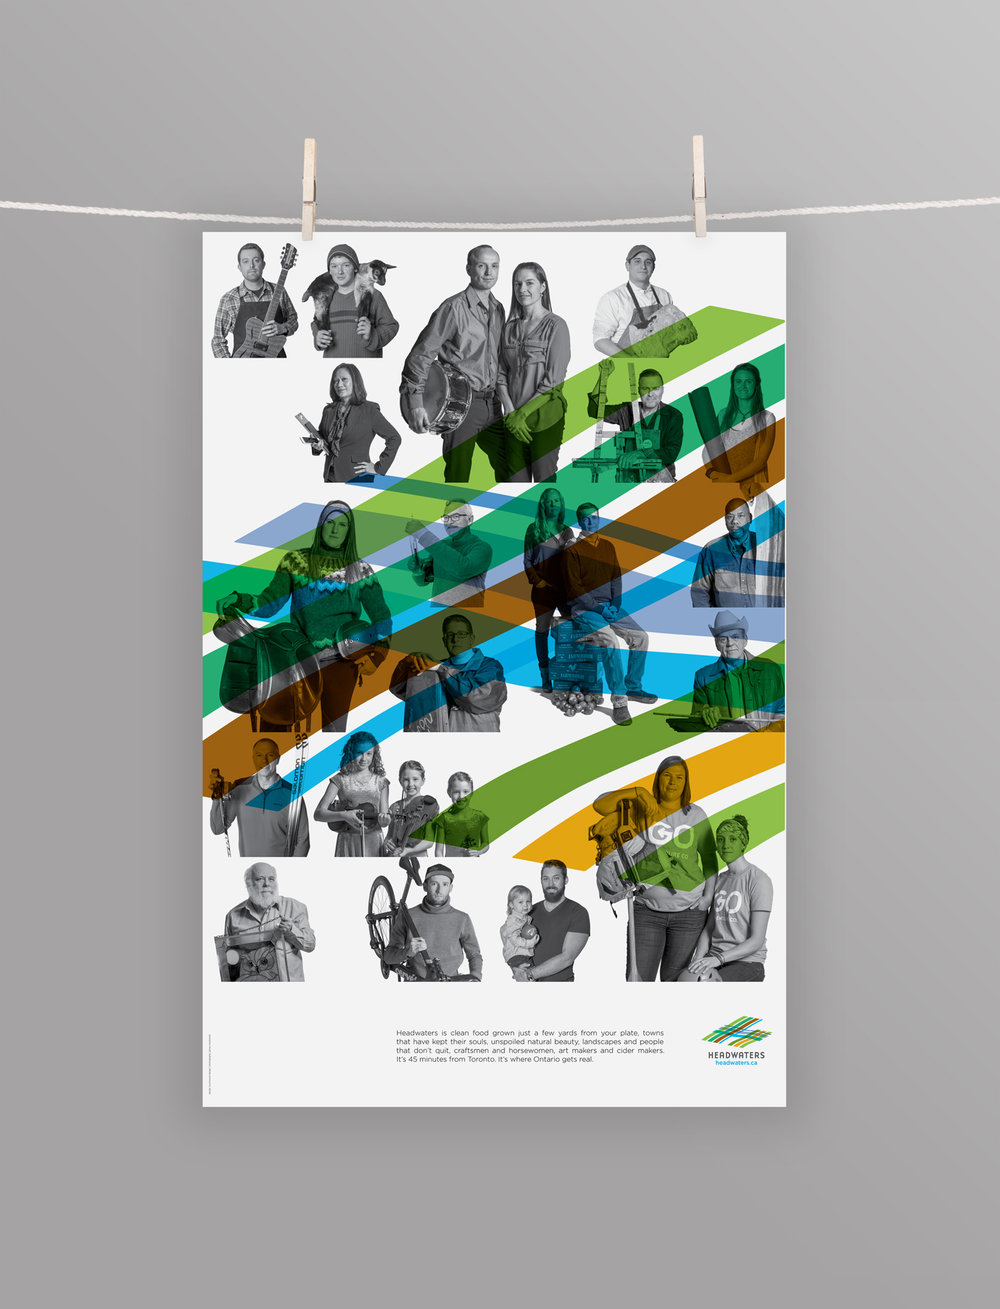 Headwaters Tourism poster showcasing the people of their region. This includes top athletes, artists, musicians, educators and chefs.